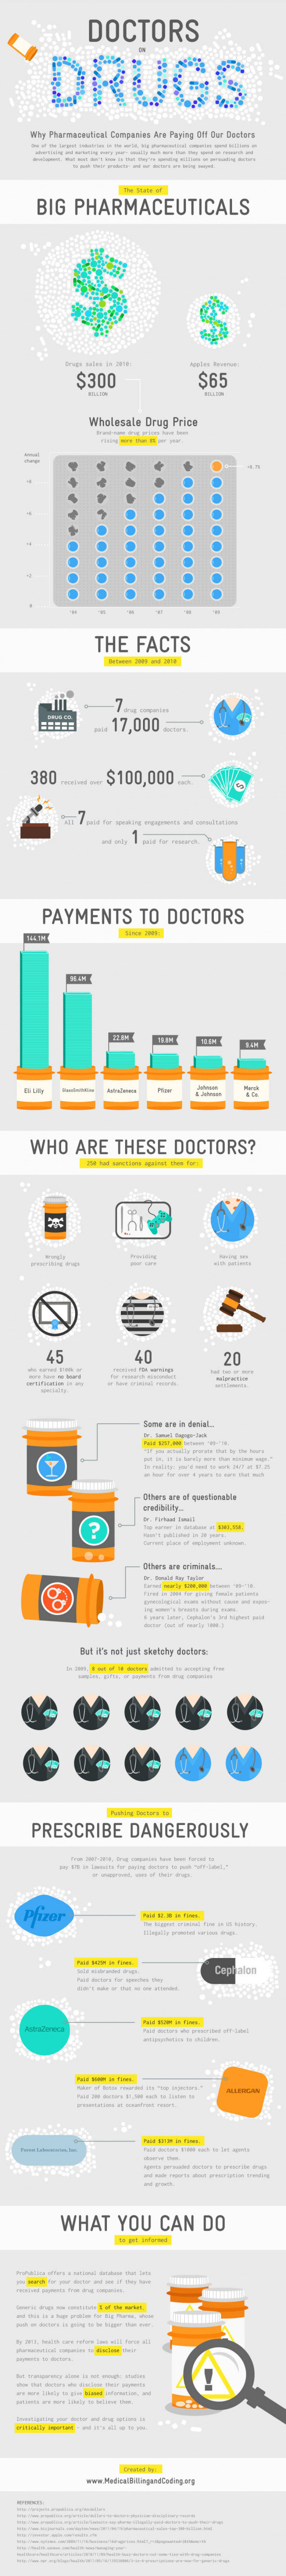 Doctors on Drugs Infographic